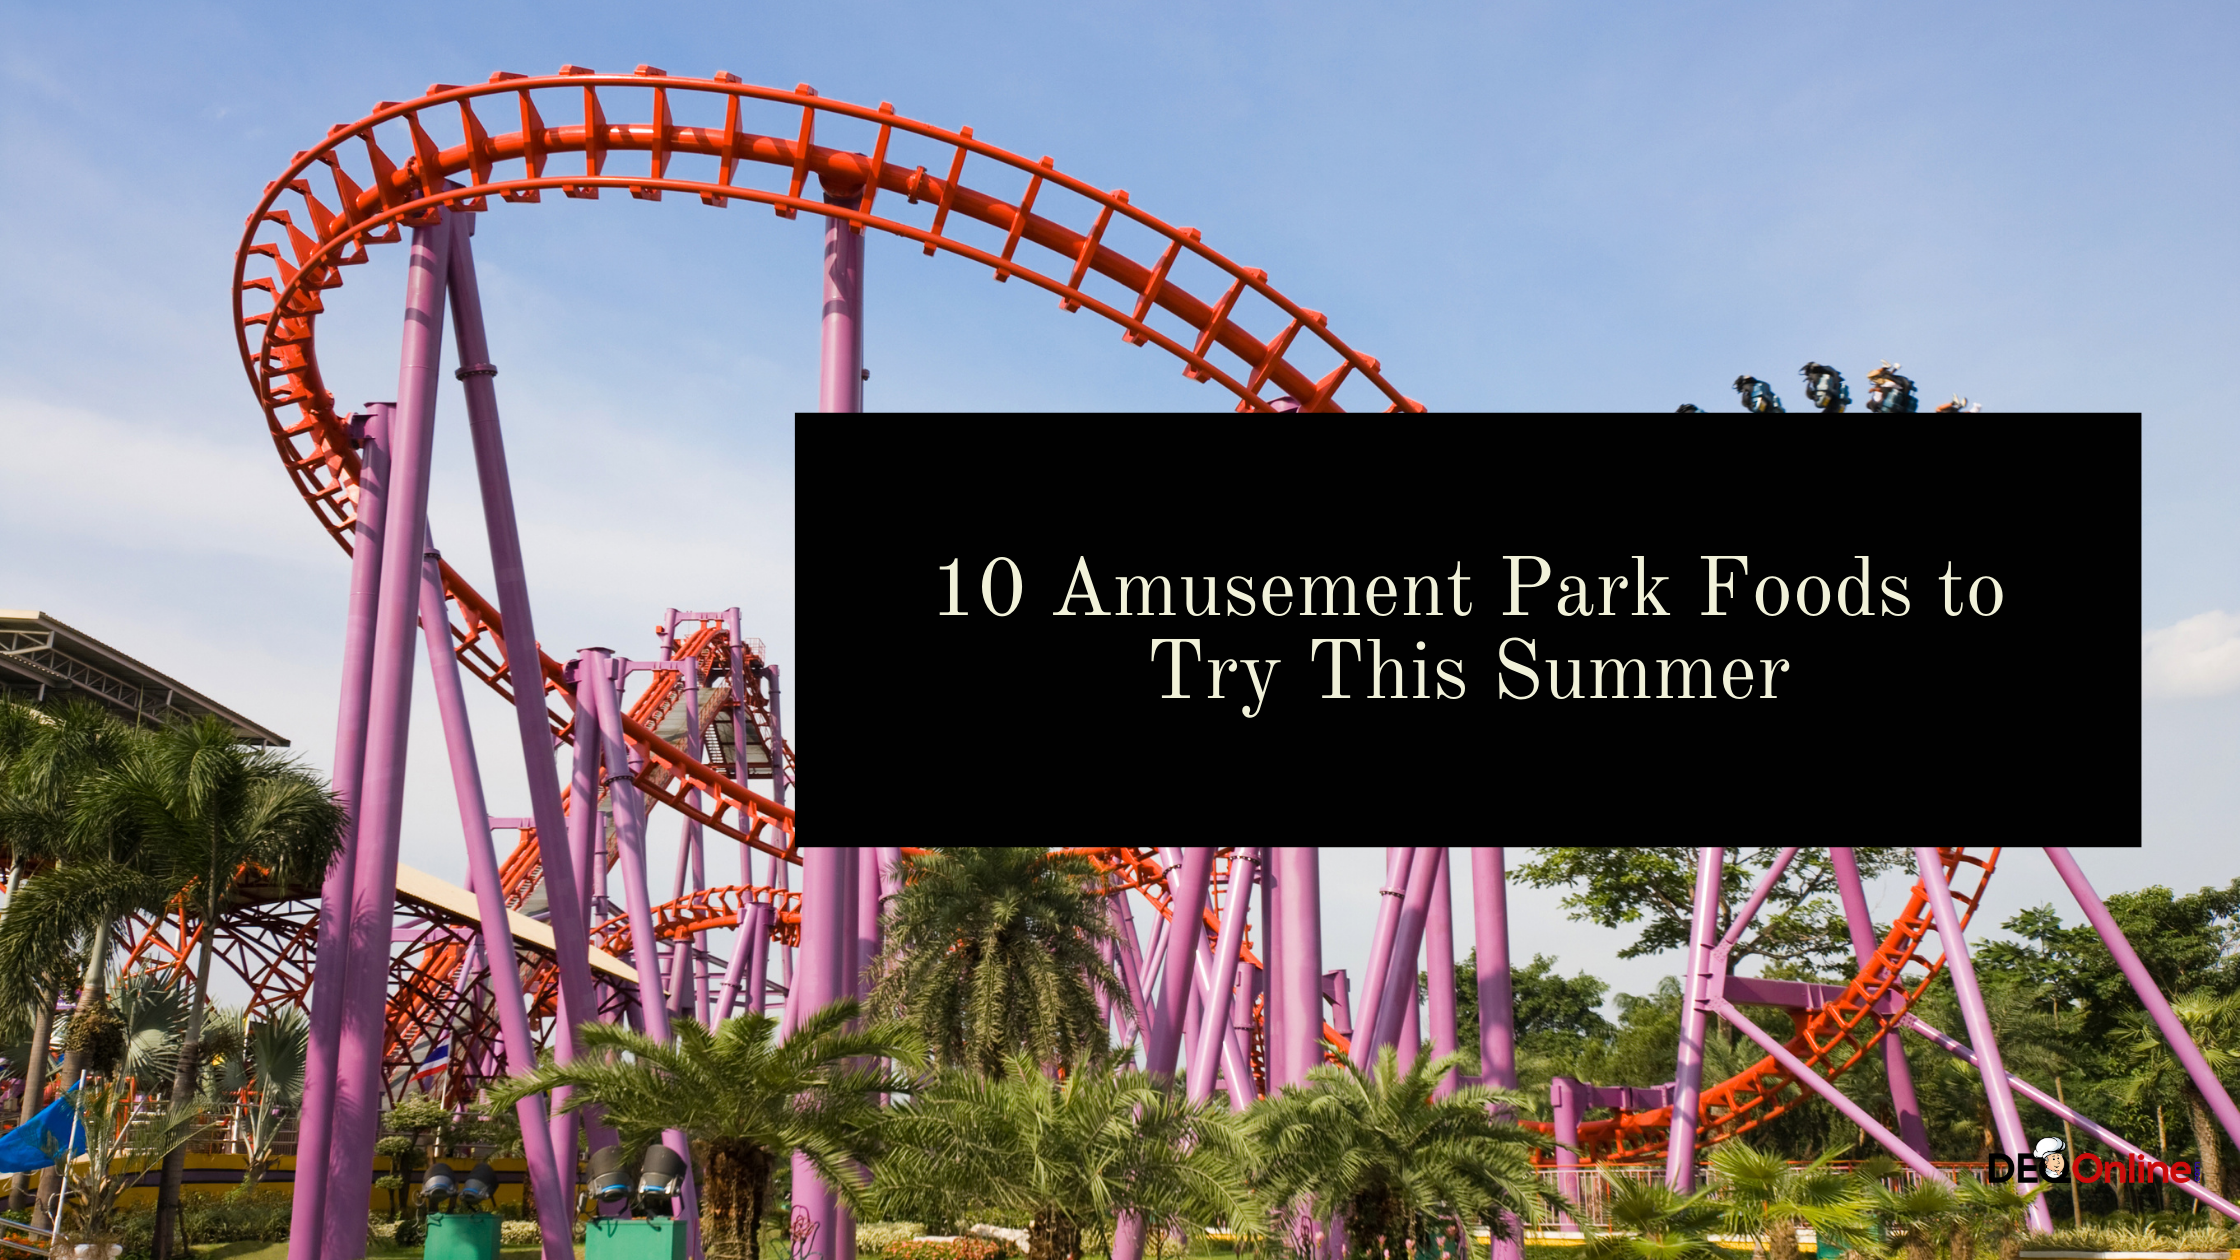 10 Amusement Park Foods to Try This Summer